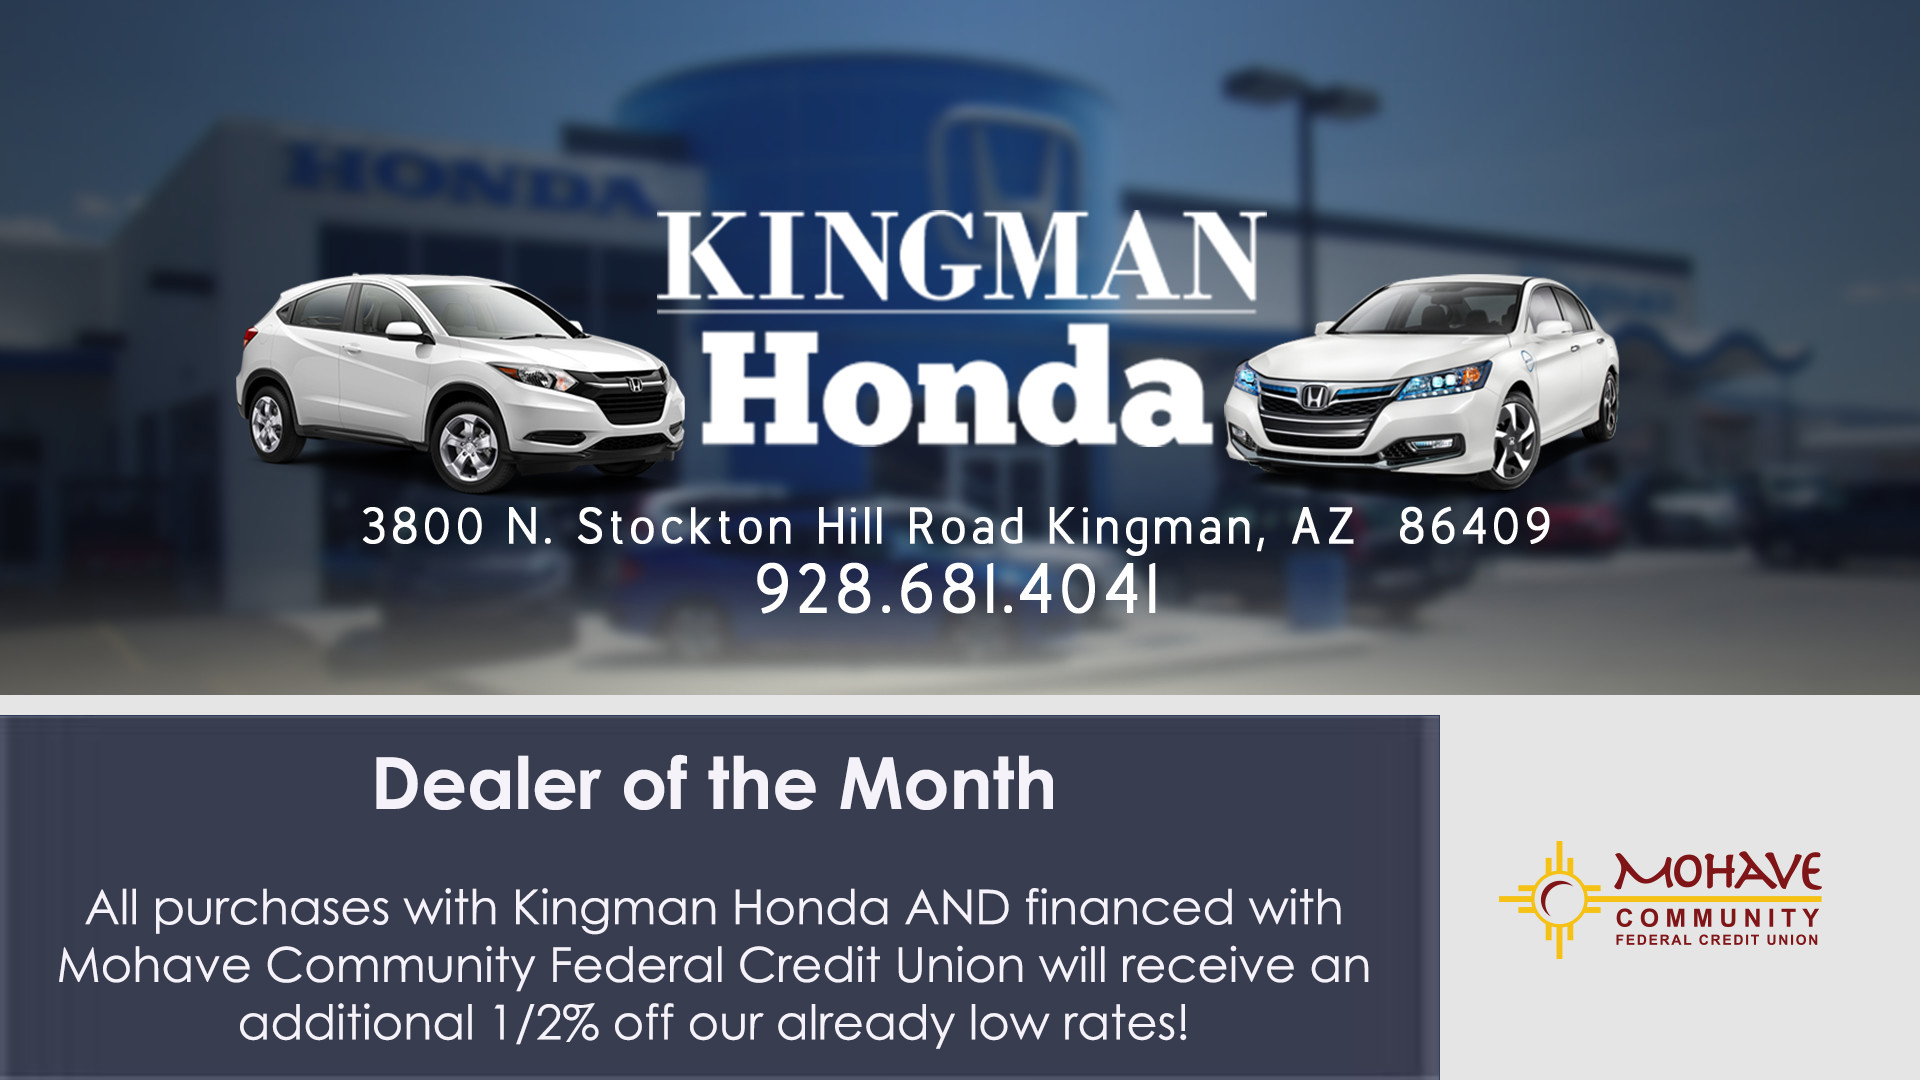 Kingman Honda is our dealer of the month. All purchases from Kingman Honda and financed with MCFCU will receicve an additional 1/2% off our already low rates. Member NCUA. Some restrictions may apply. Call us at 928-753-8000 for more details. July 1st - July 31st 2019.